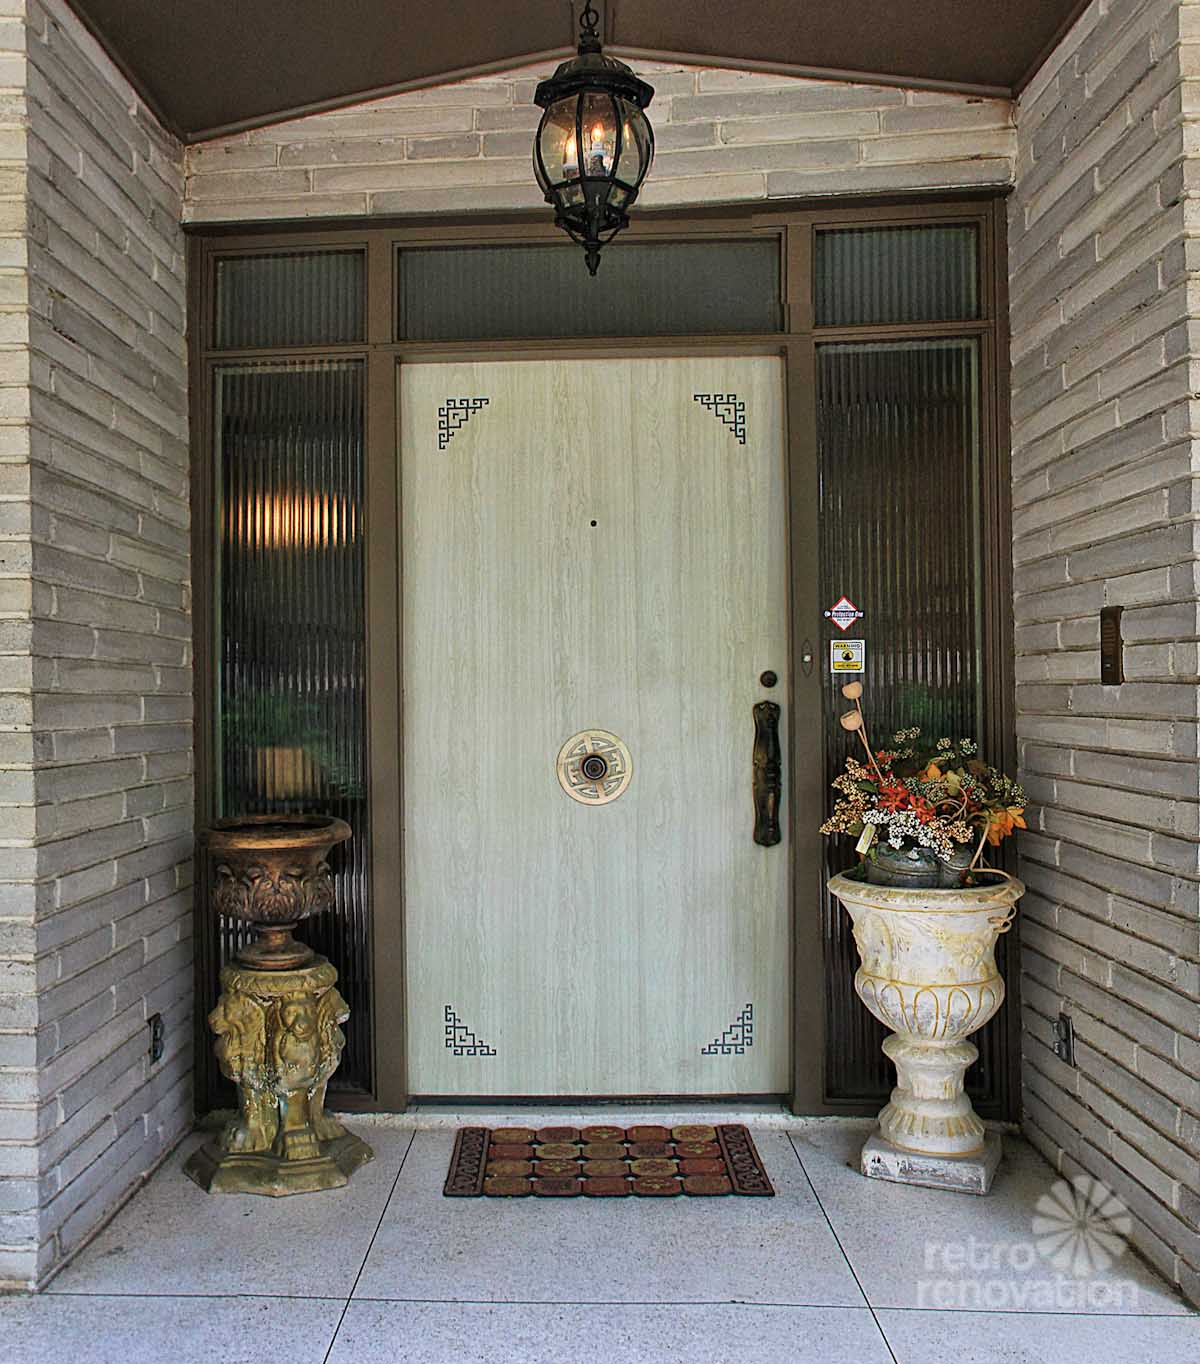 1364 #5E4C39  1972 Time Capsule House In San Antonio 33 Photos Retro Renovation picture/photo Entry Doors San Antonio 38991200